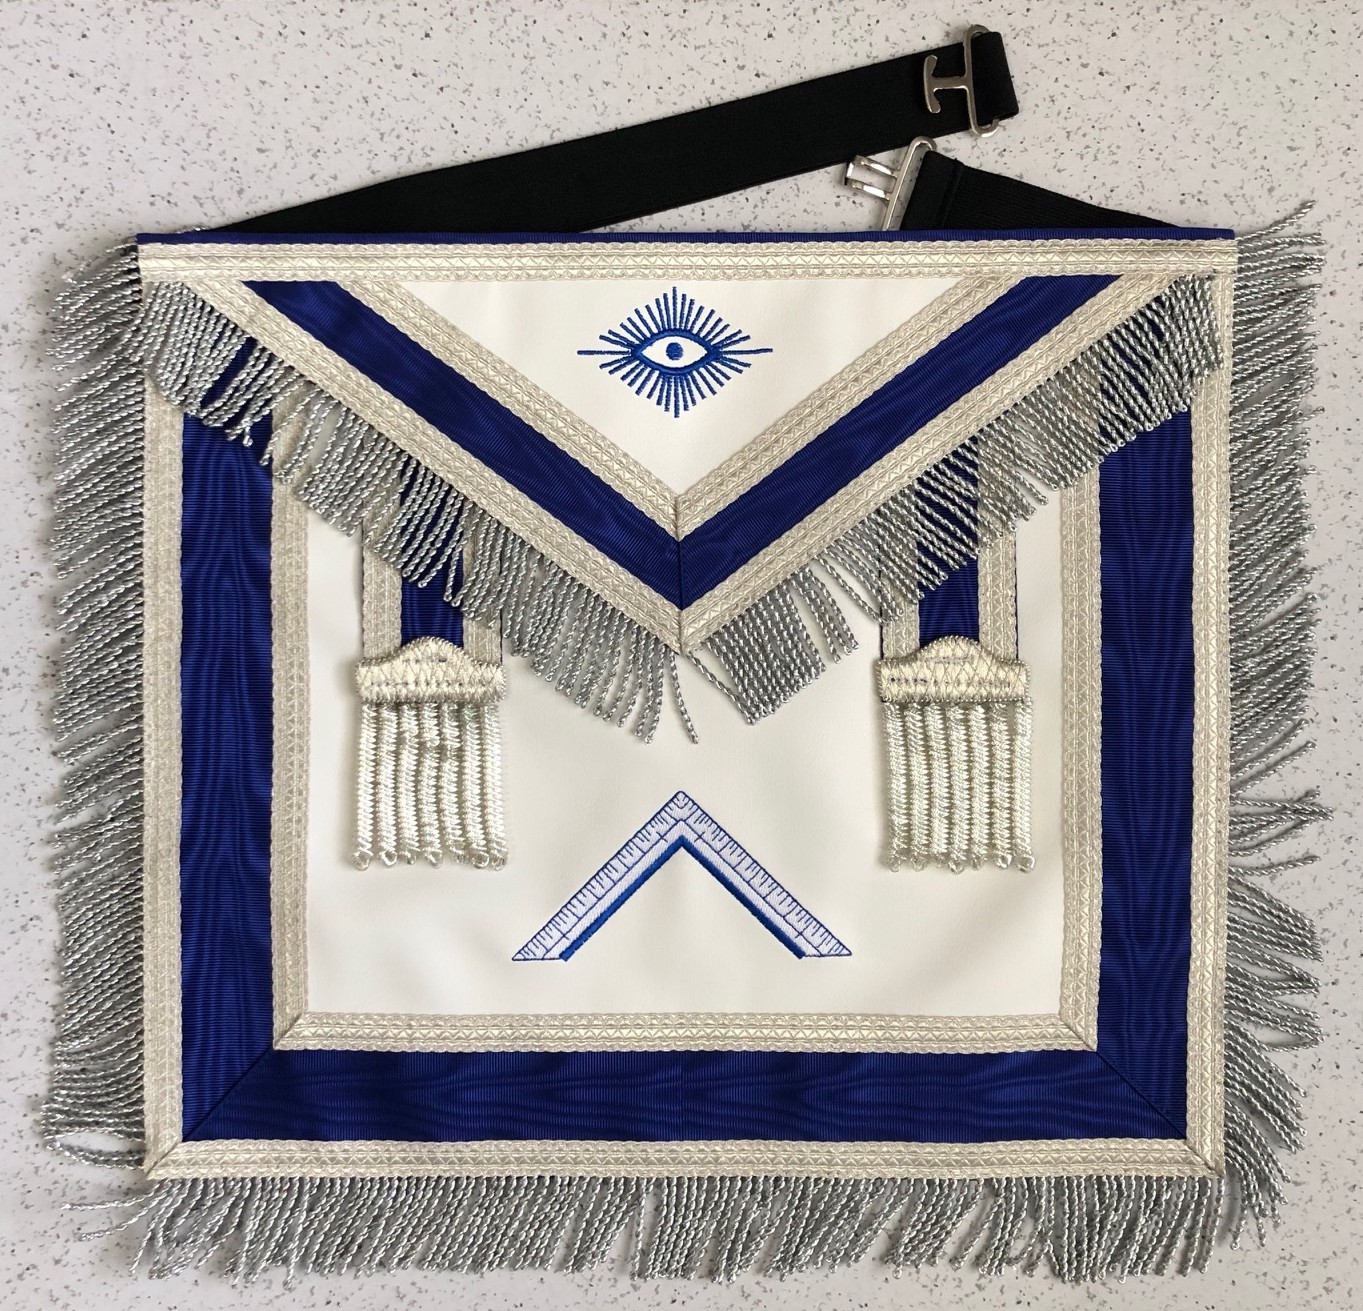 Lodge Officer Apron - Imitation Leather with Tassels & Fringe